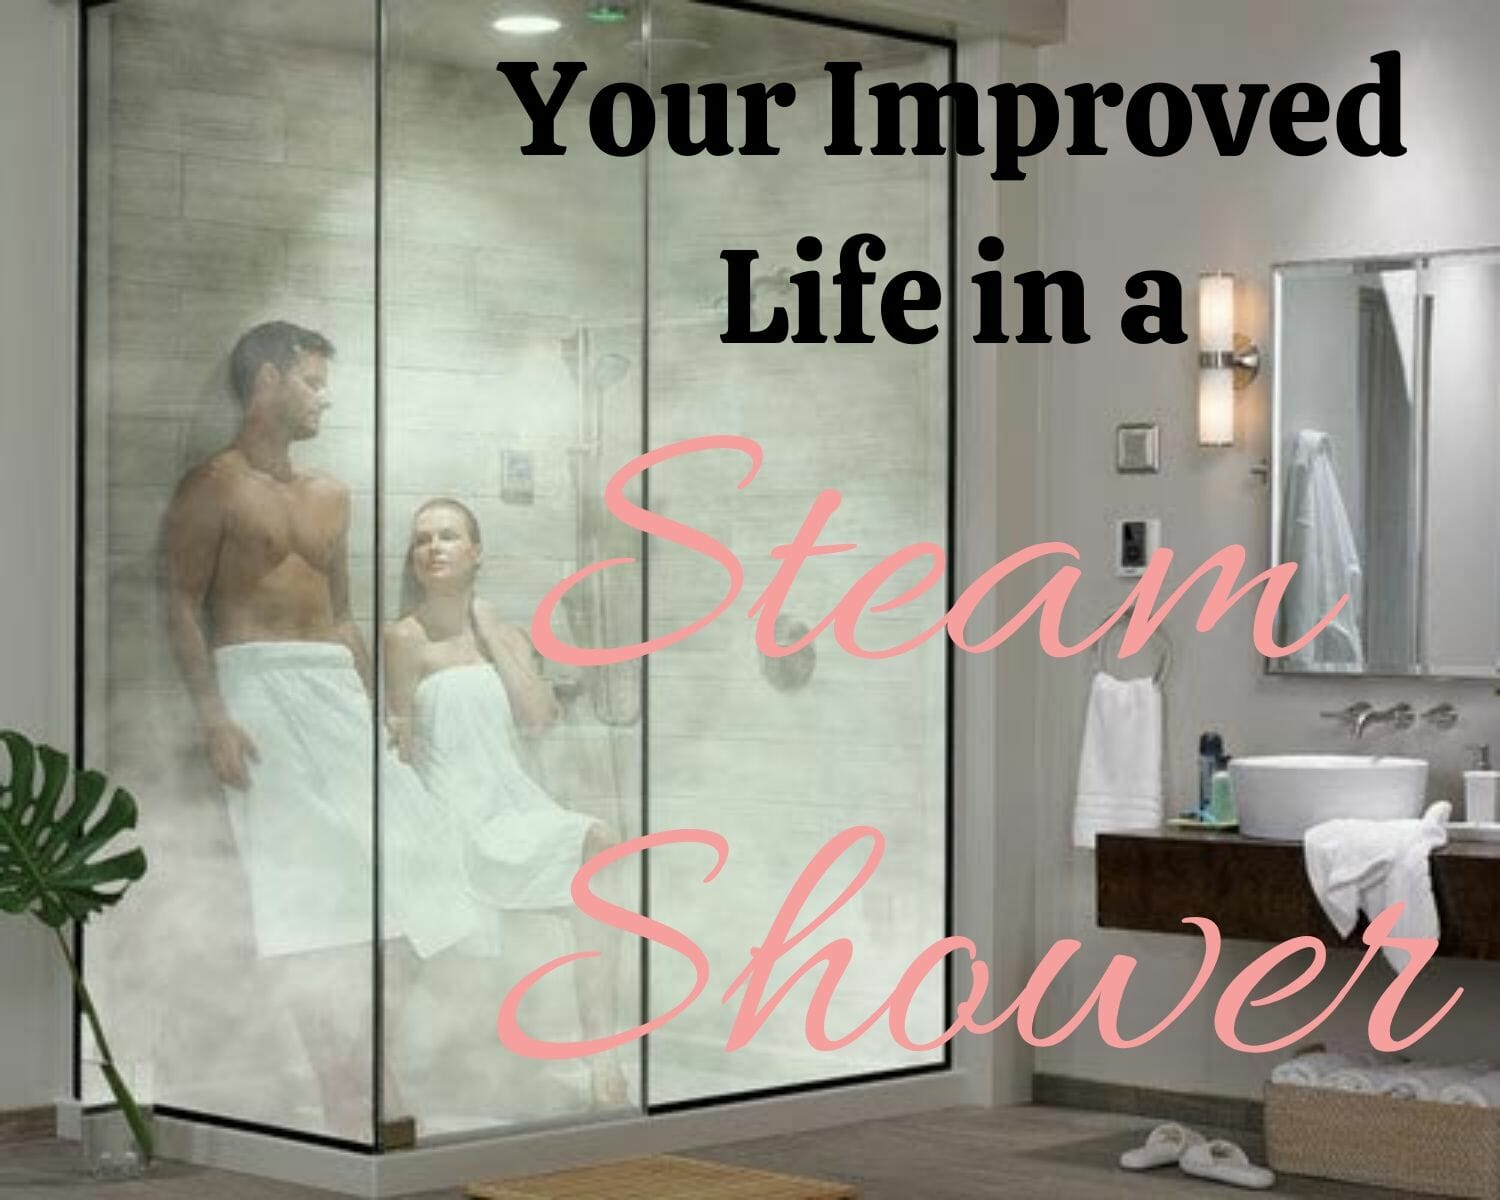 Improve life in a steam shower